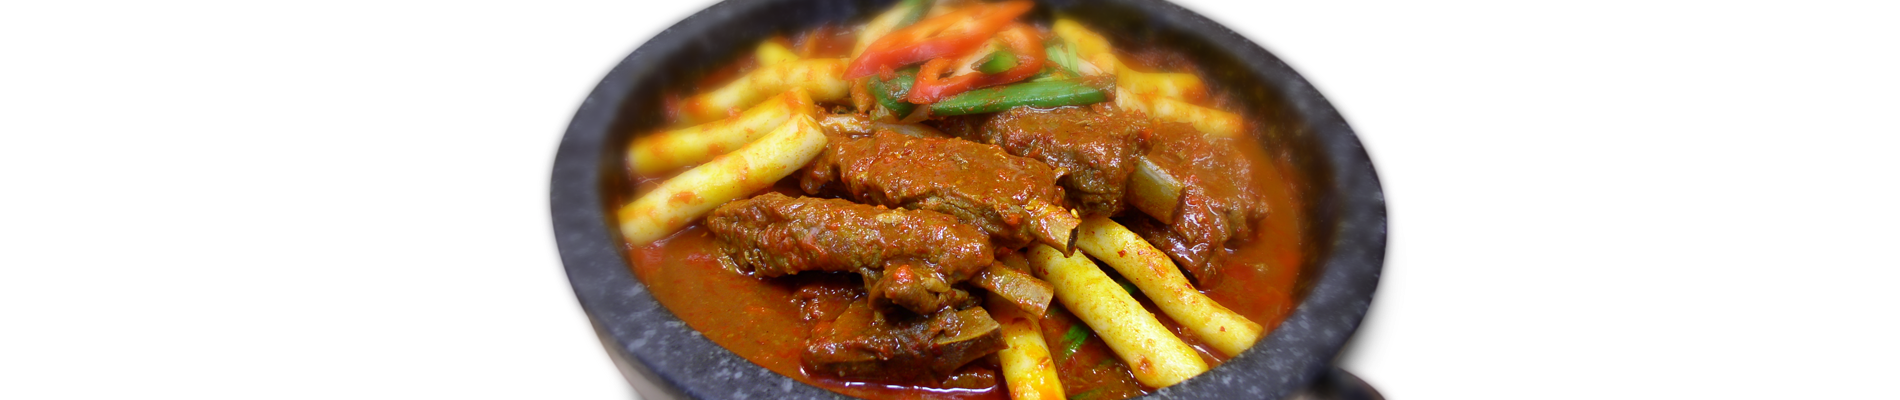 Braised Spicy Pork Ribs